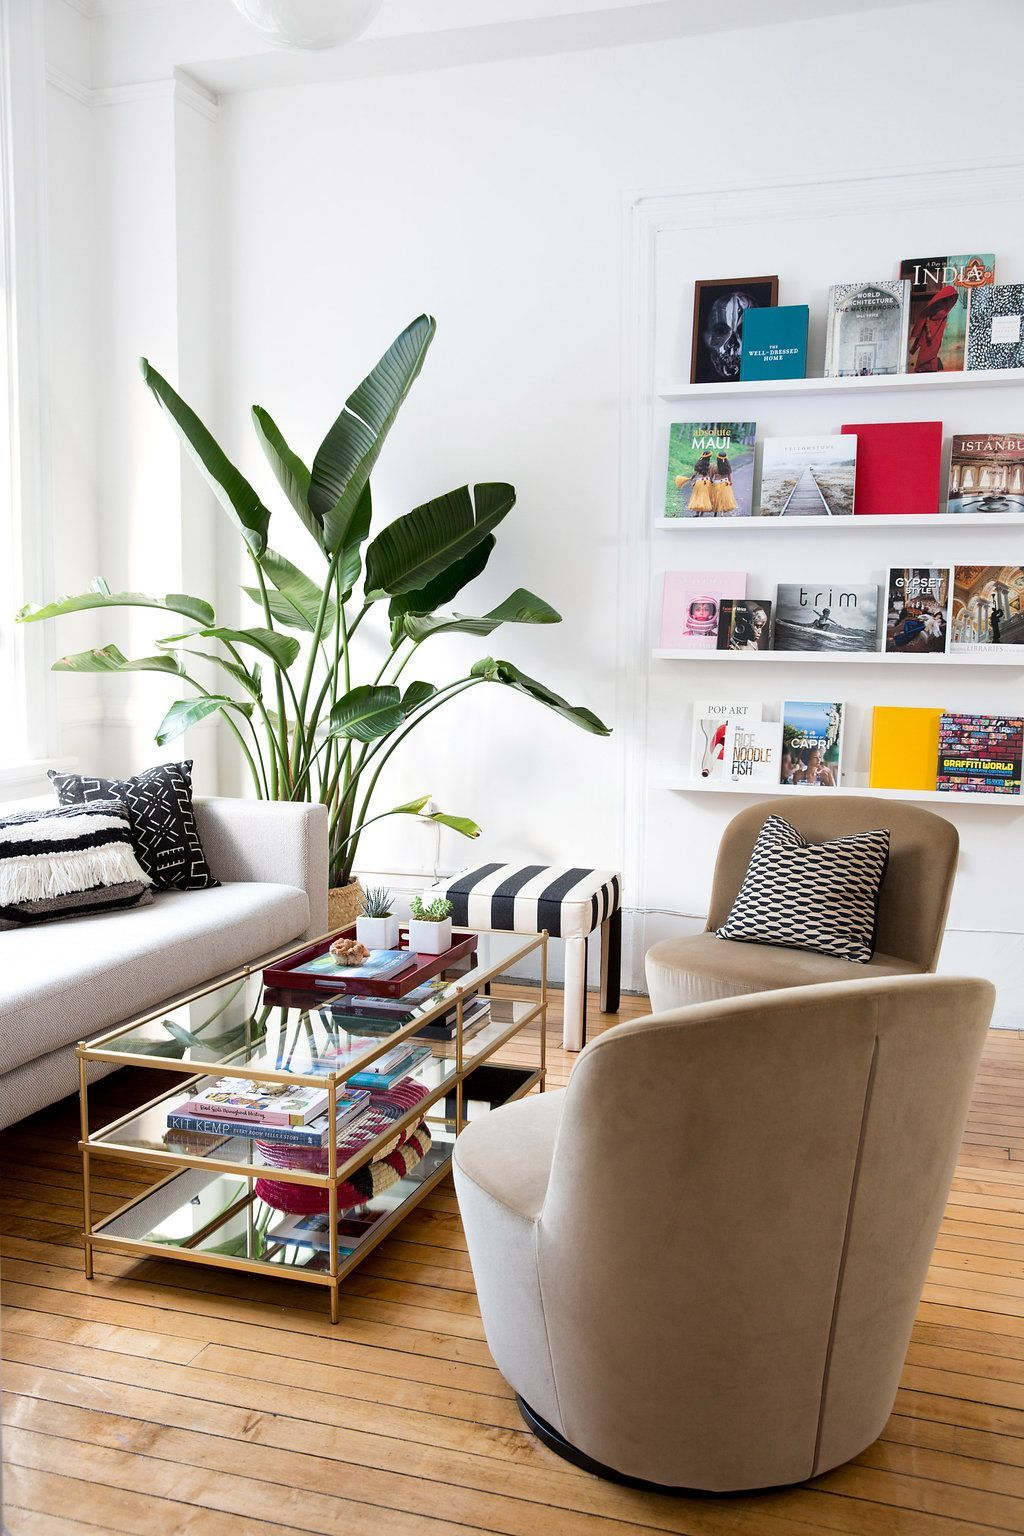 This Startup Office Offers SO Much Home Inspiration | Cozy office ...